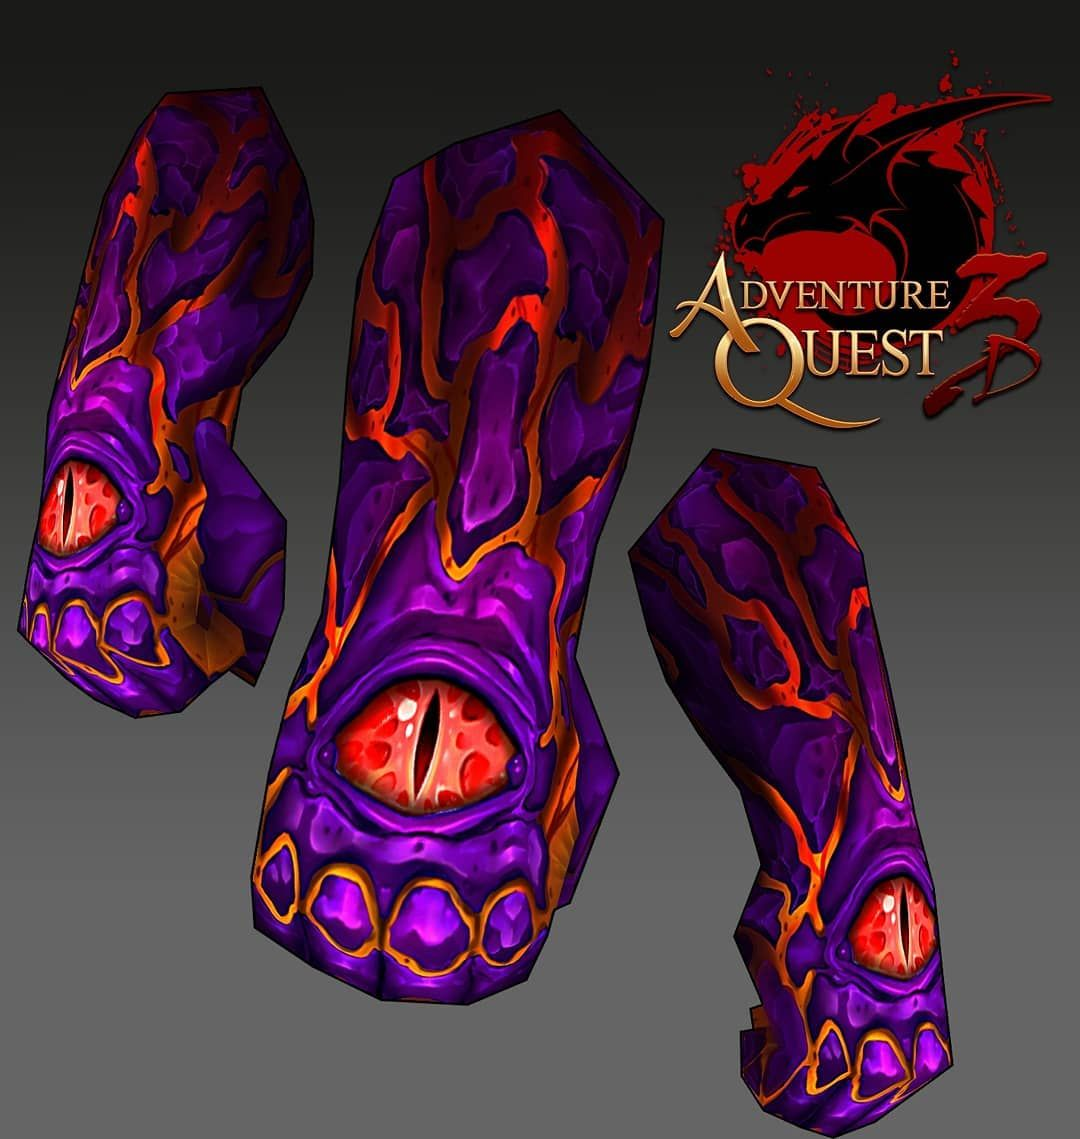 Guanty guant guantlets :) #aq3d #thyton #gameart